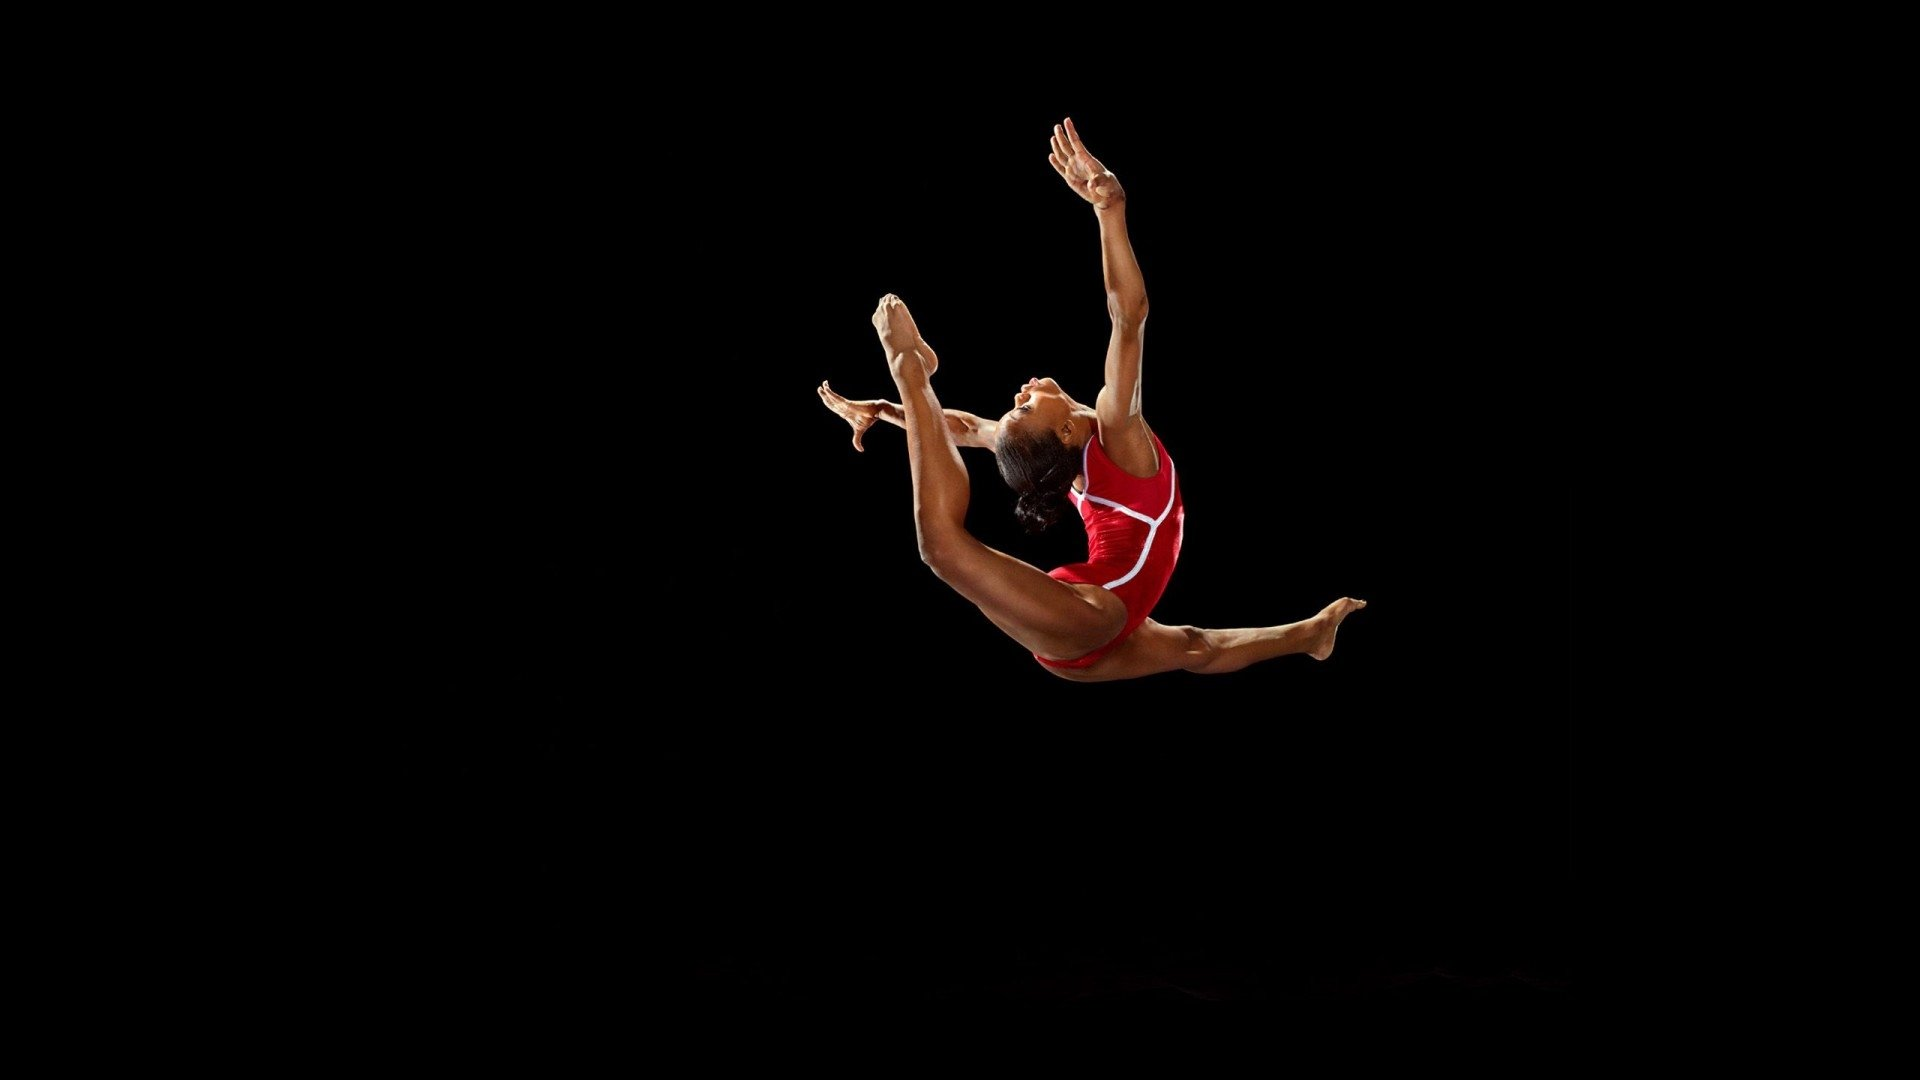 Gymnastics Backgrounds 1920x1080